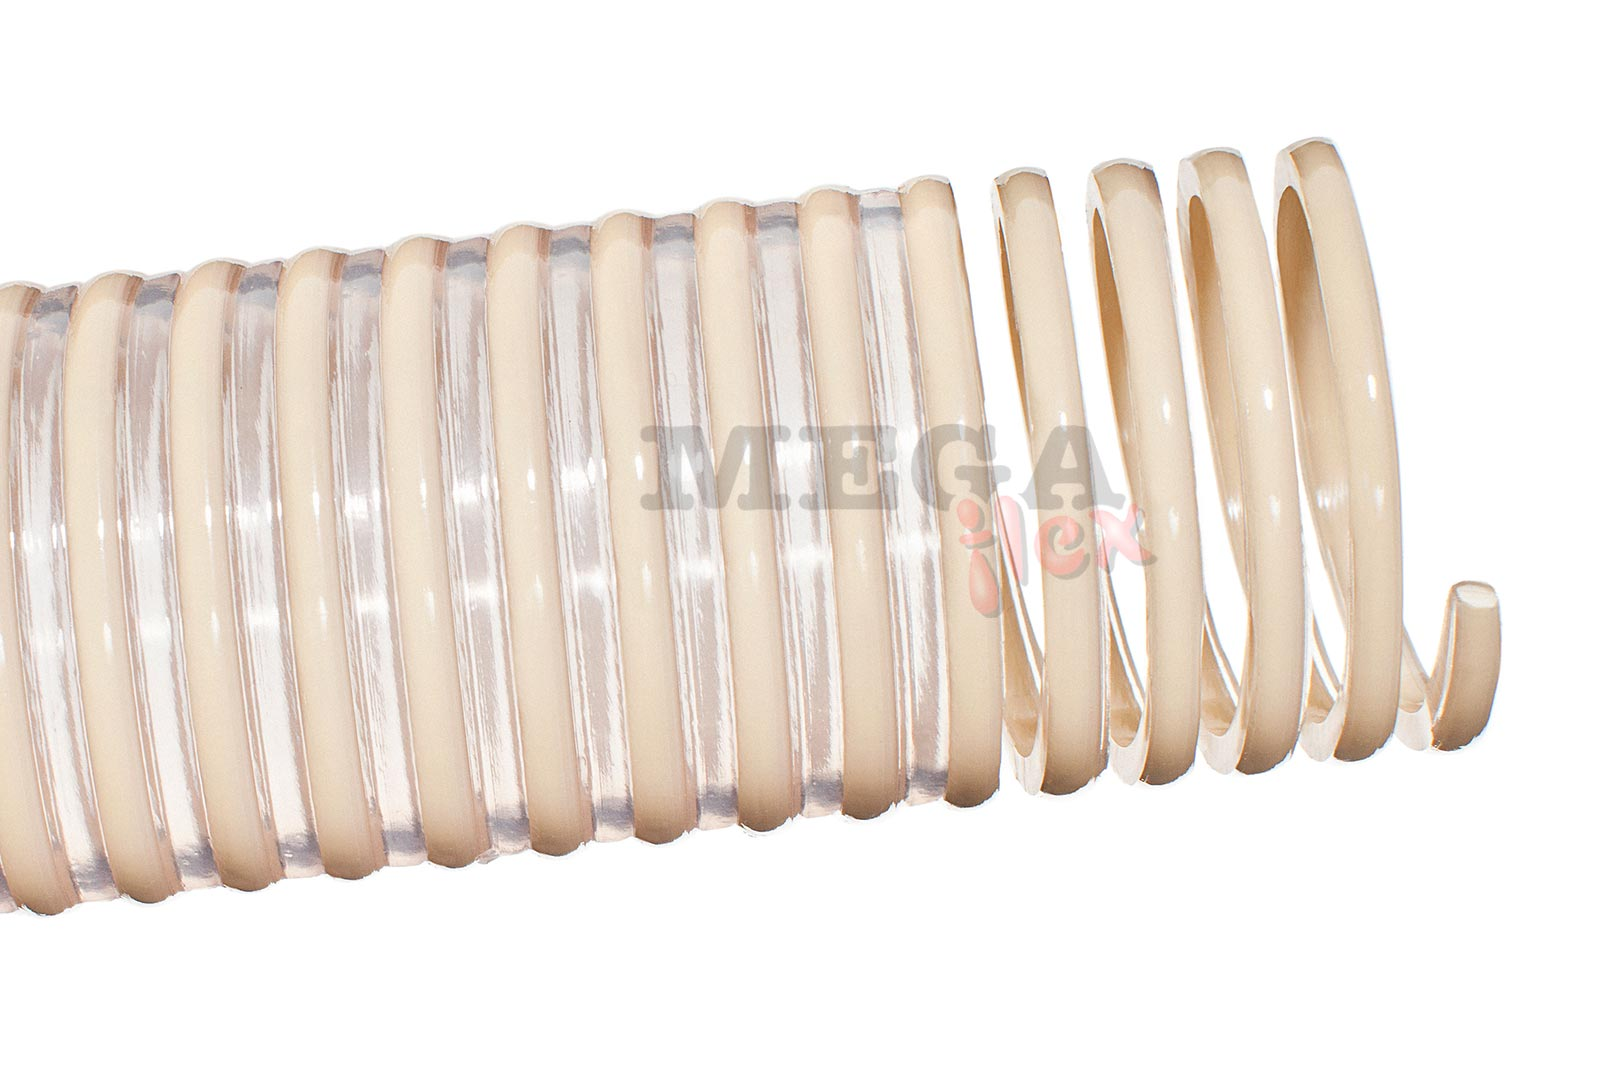 Nettuno FF AS - Antistatic Clear Plasticized Vinyl Compound Walled S&D Hose with Rigid PVC Helix